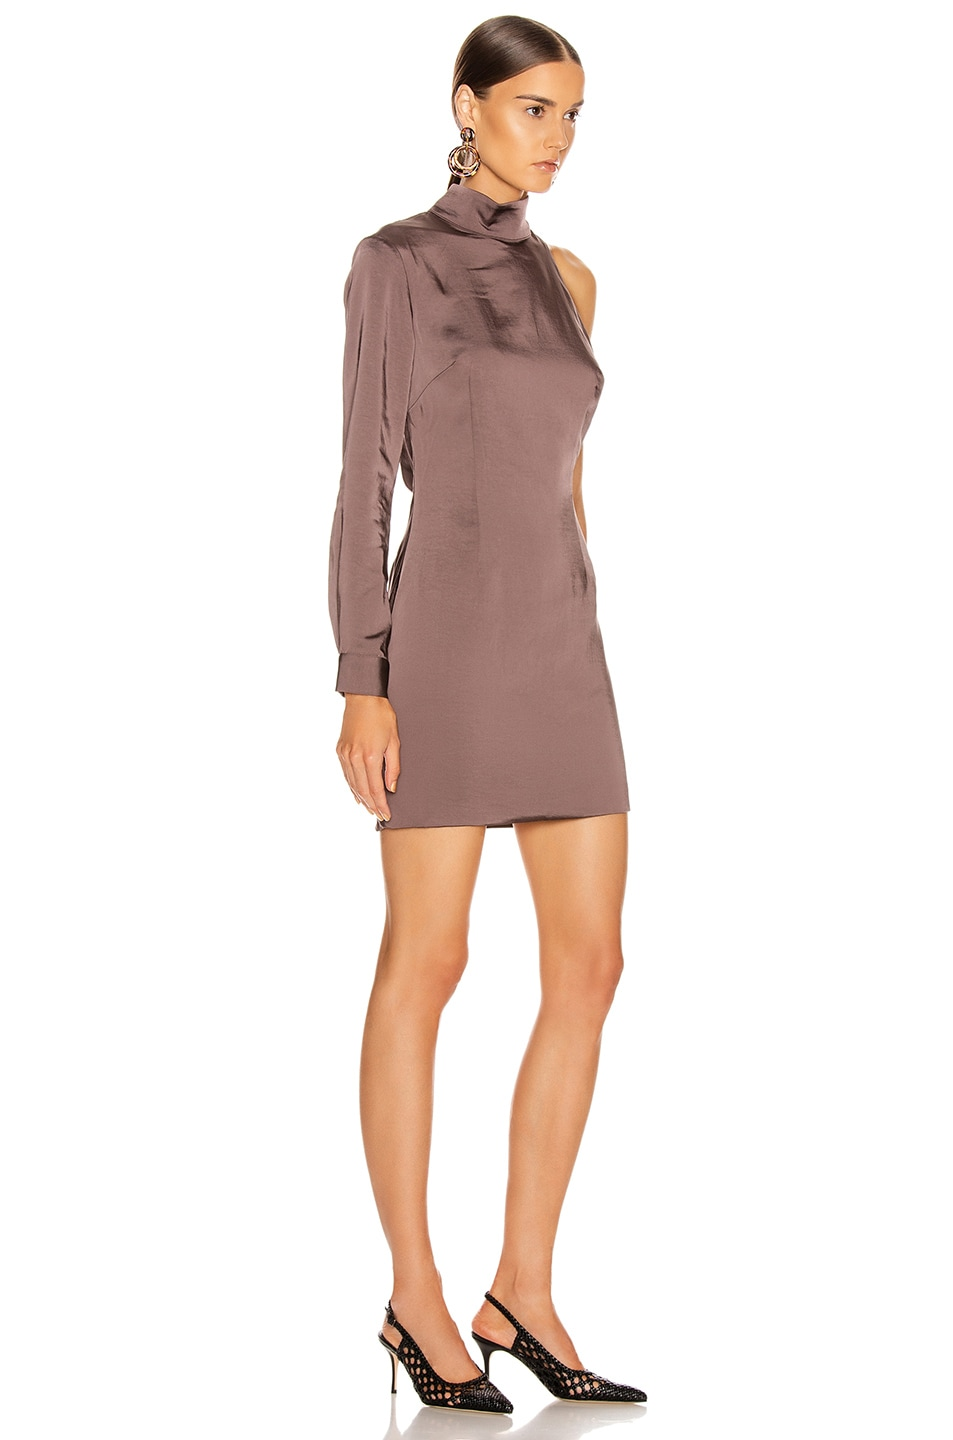 Image 2 of Atoir Negative Spaces Dress in Chocolate